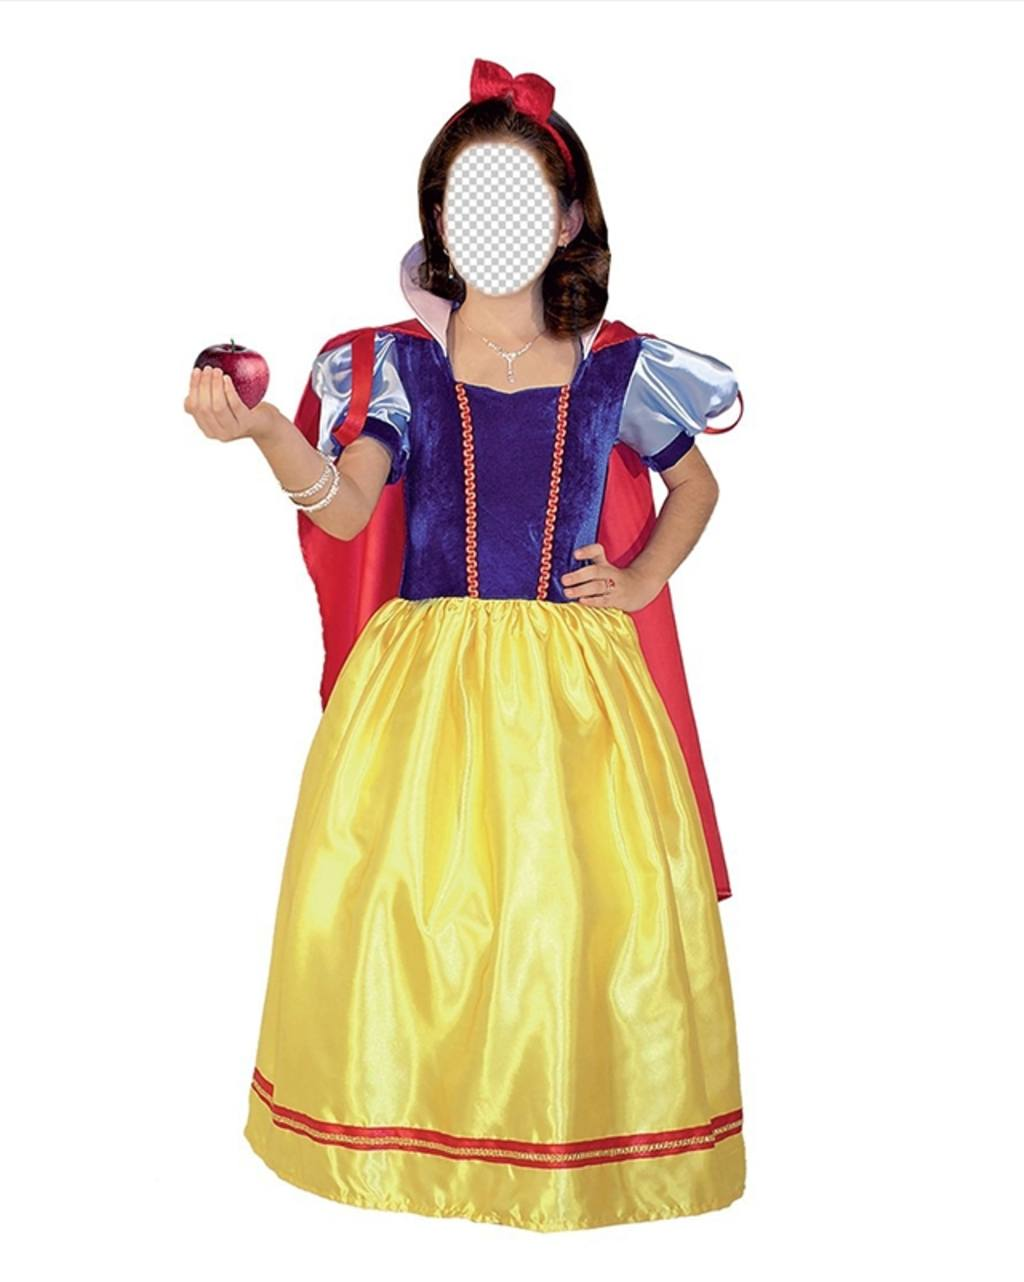 Photomontage of Snow White to put your face online